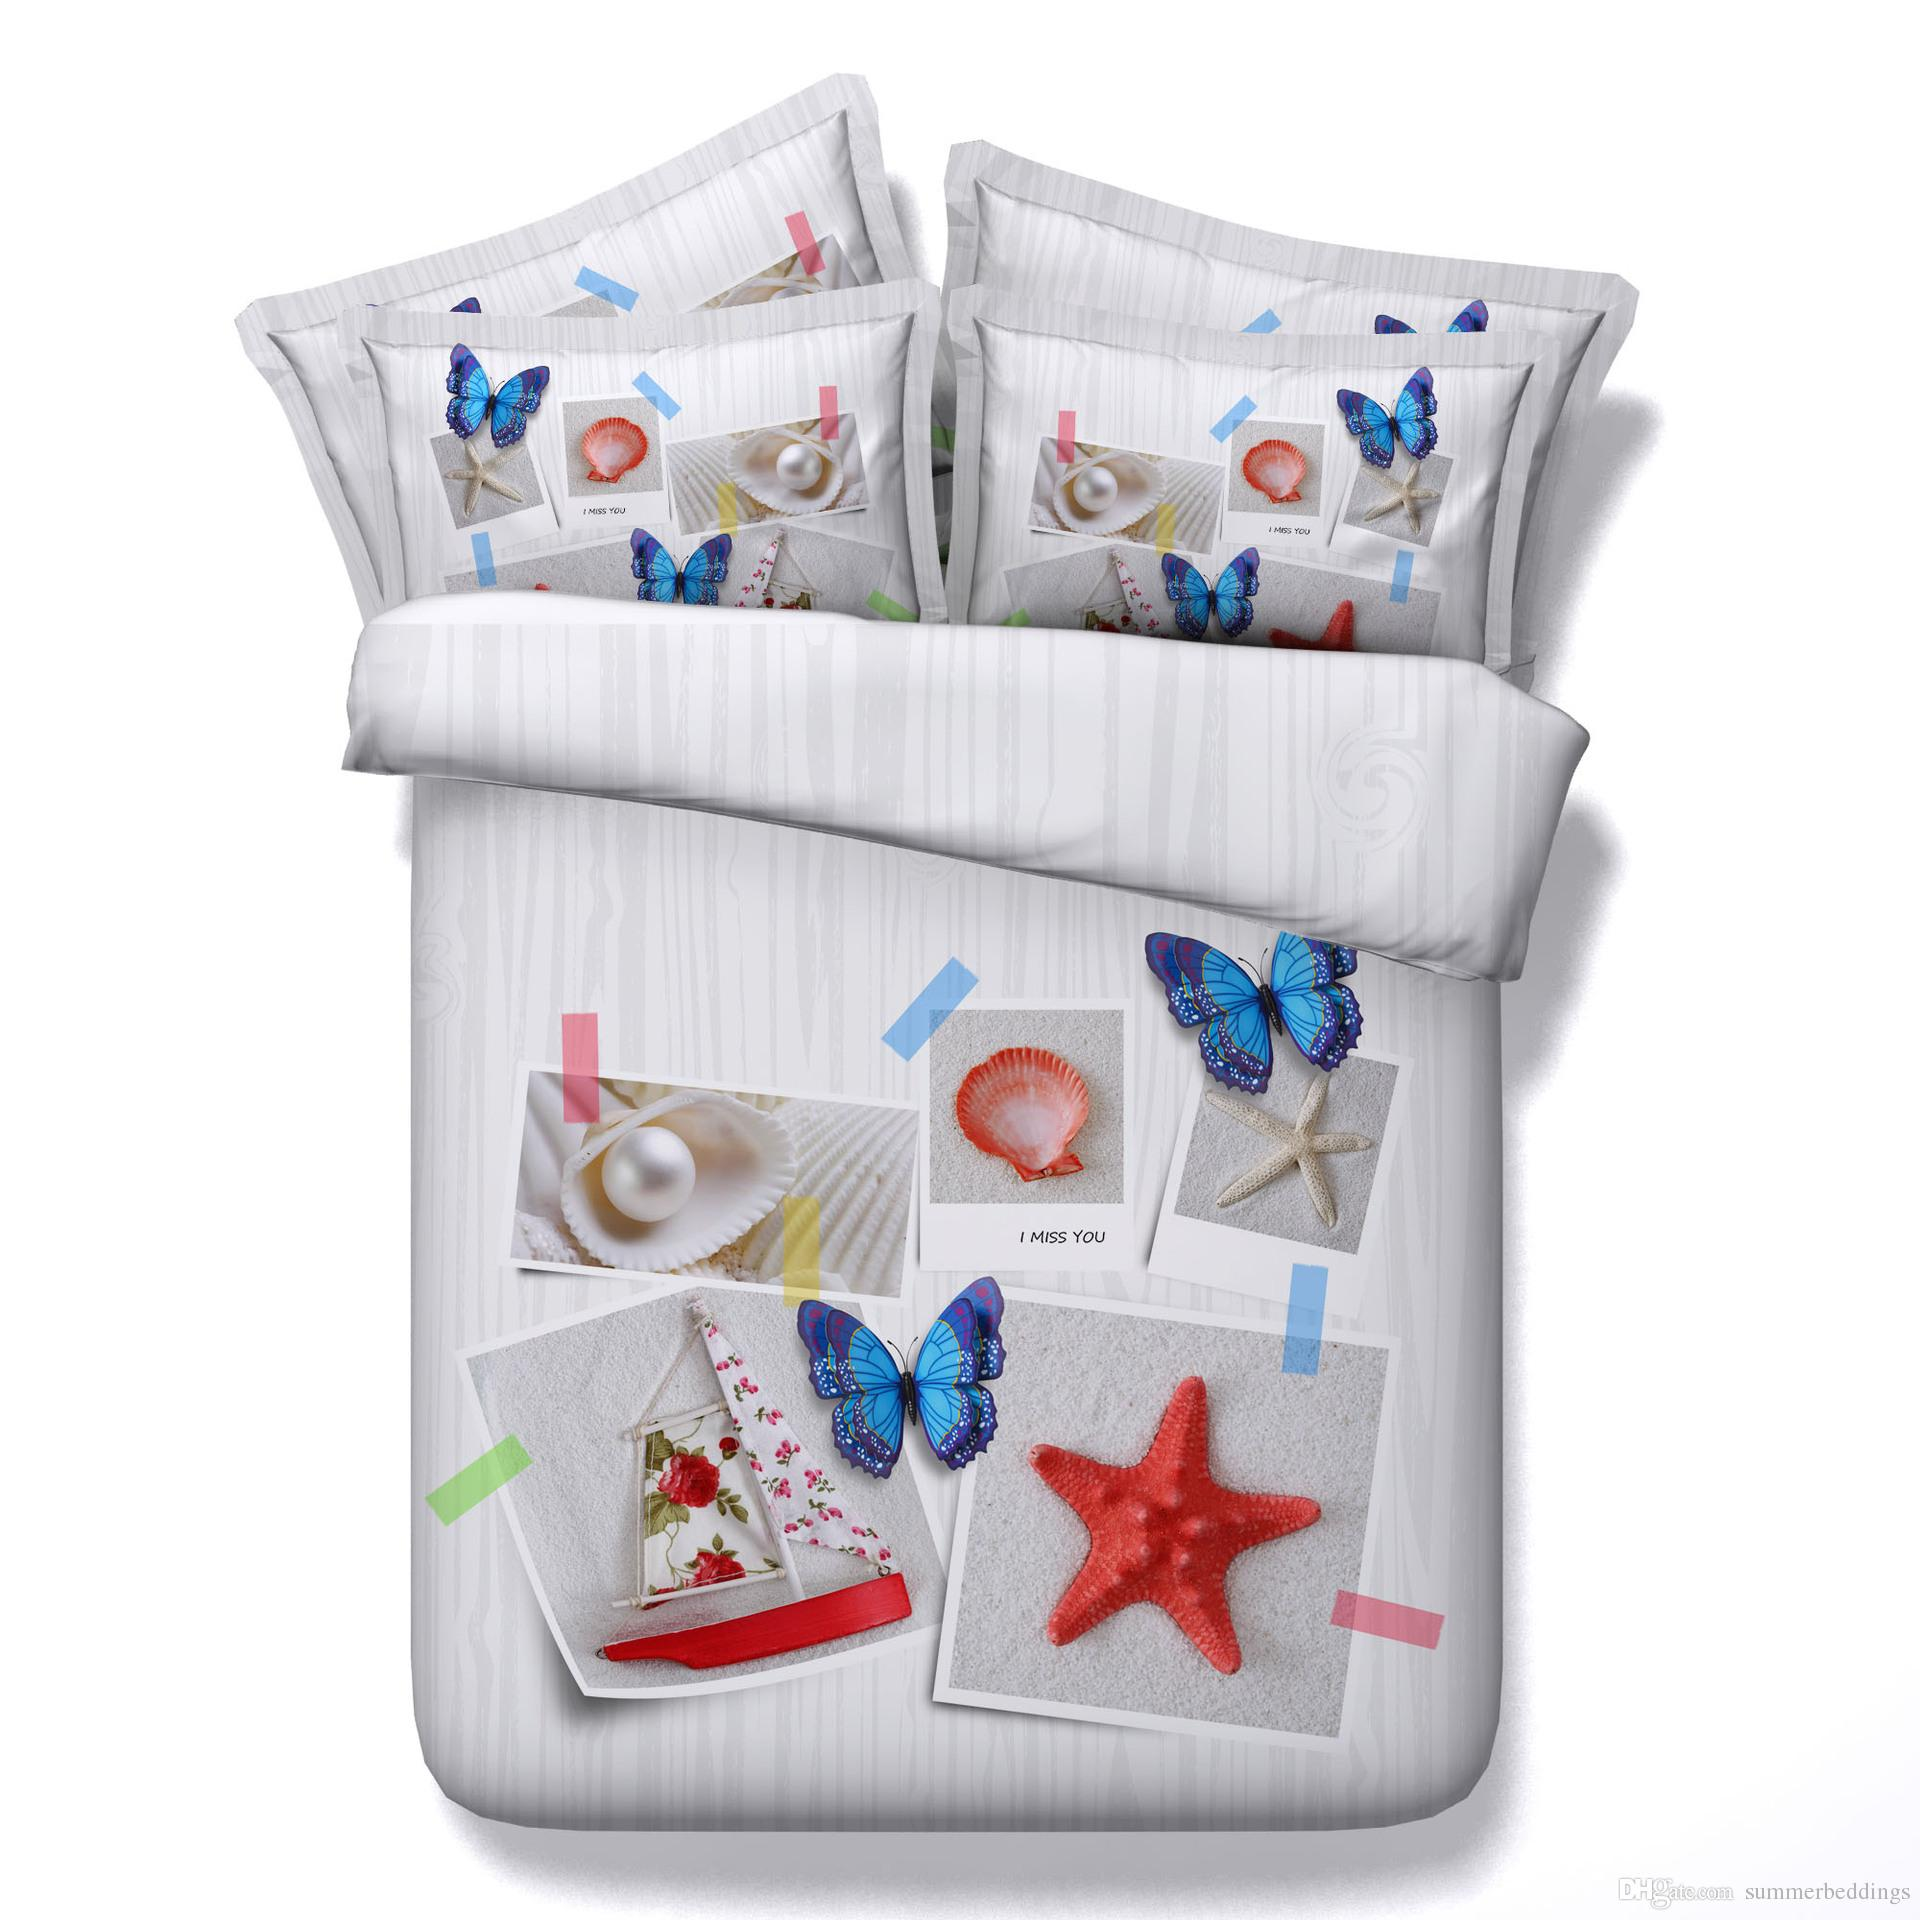 3D ocean beach theme Duvet Cover starfish bedding sets queen butterfly Bedspreads Holiday Quilt Covers Bed Linen Pillow Covers home textiles